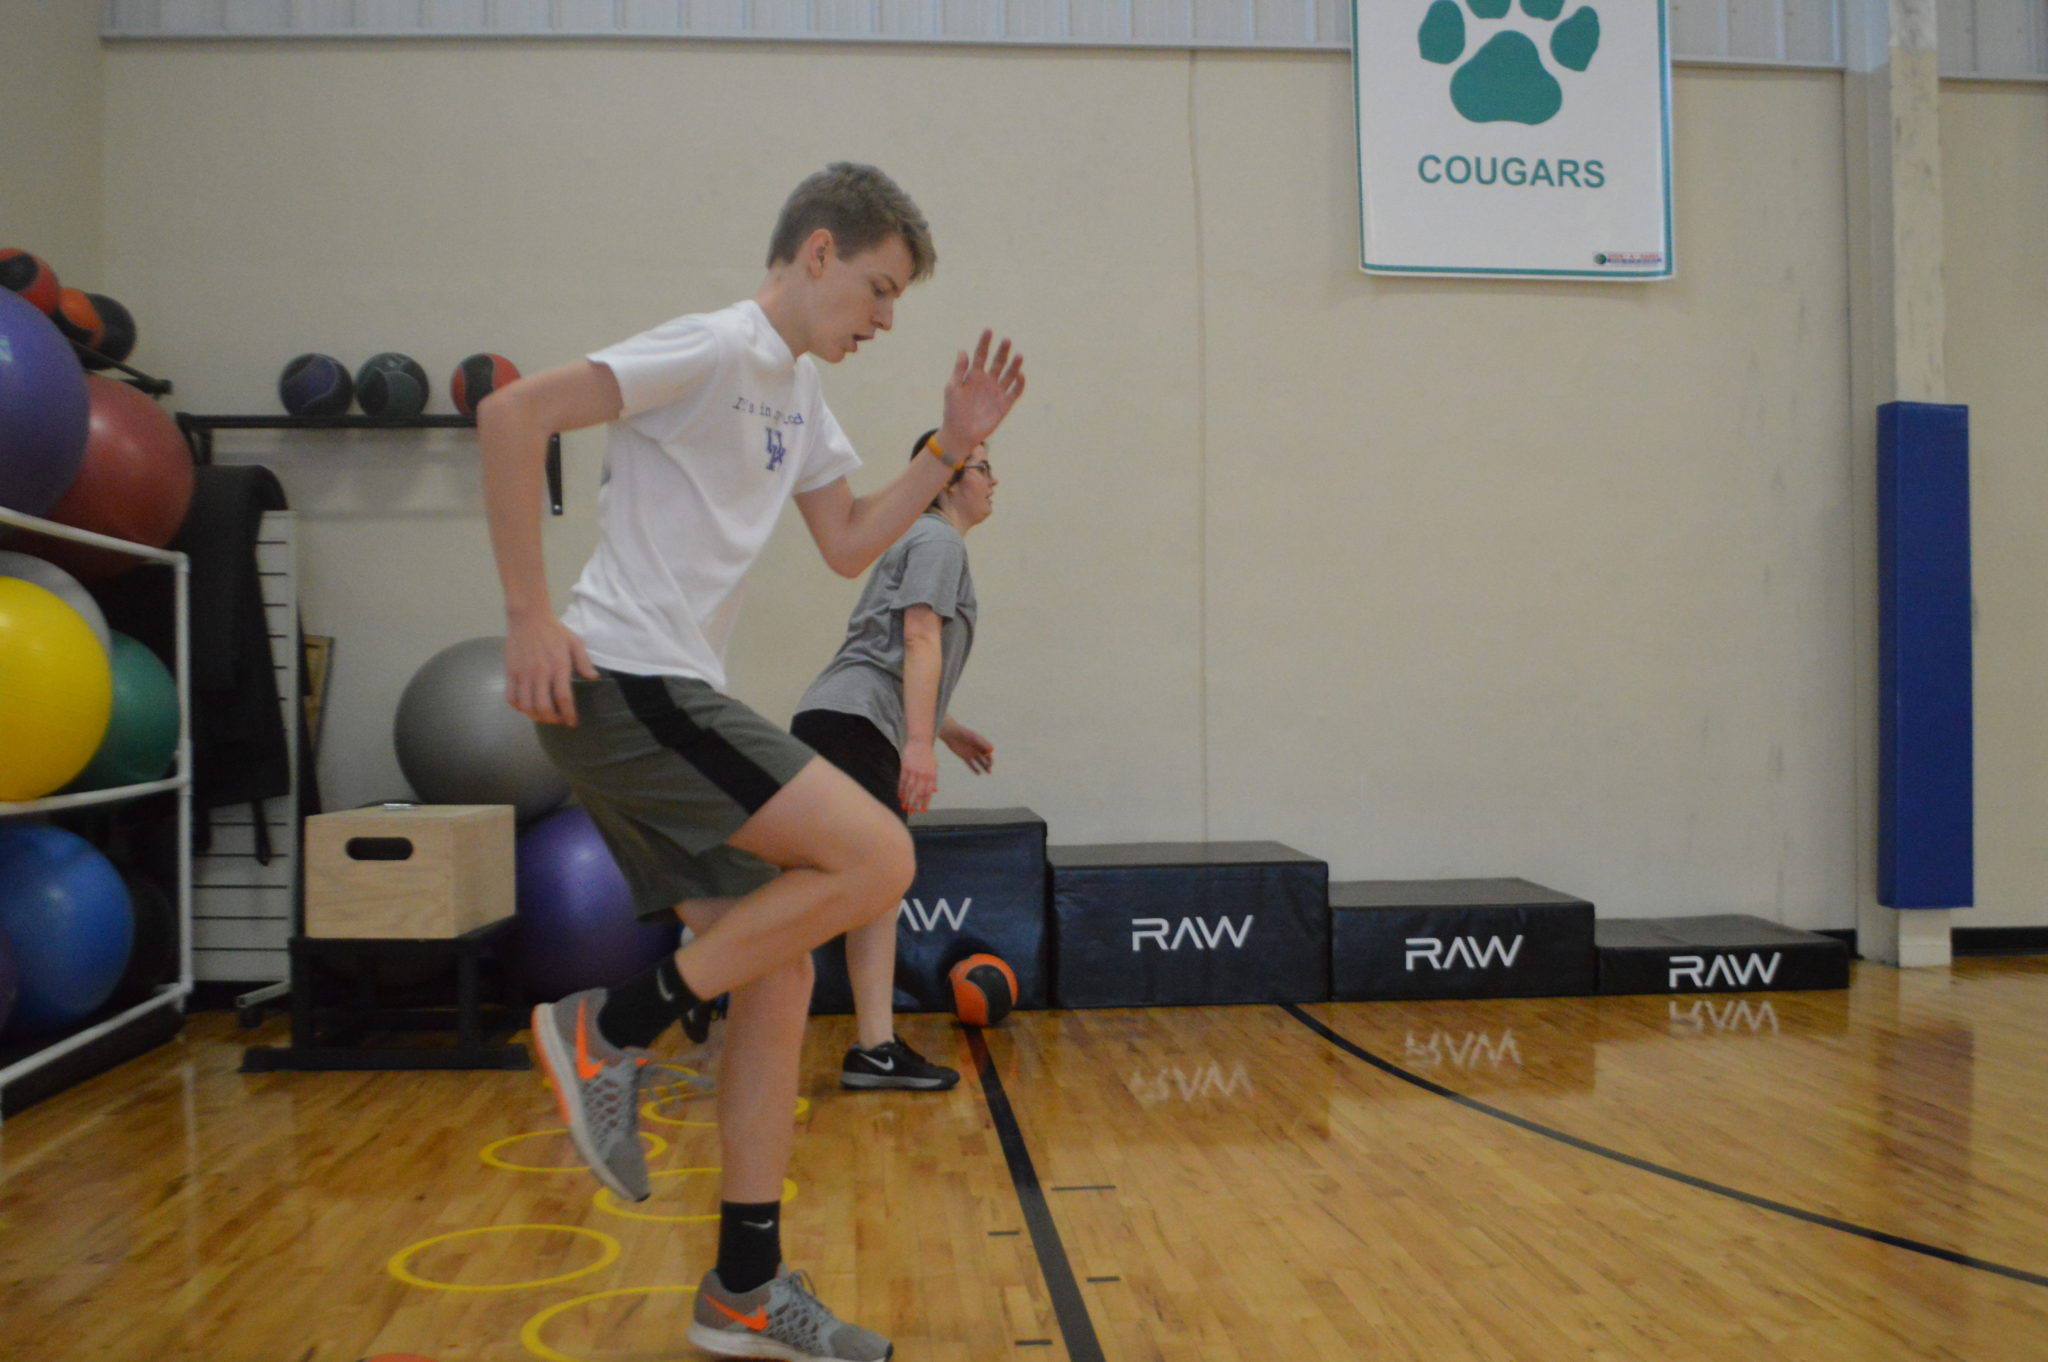 Total Rehab Center Partnerships with Athletes